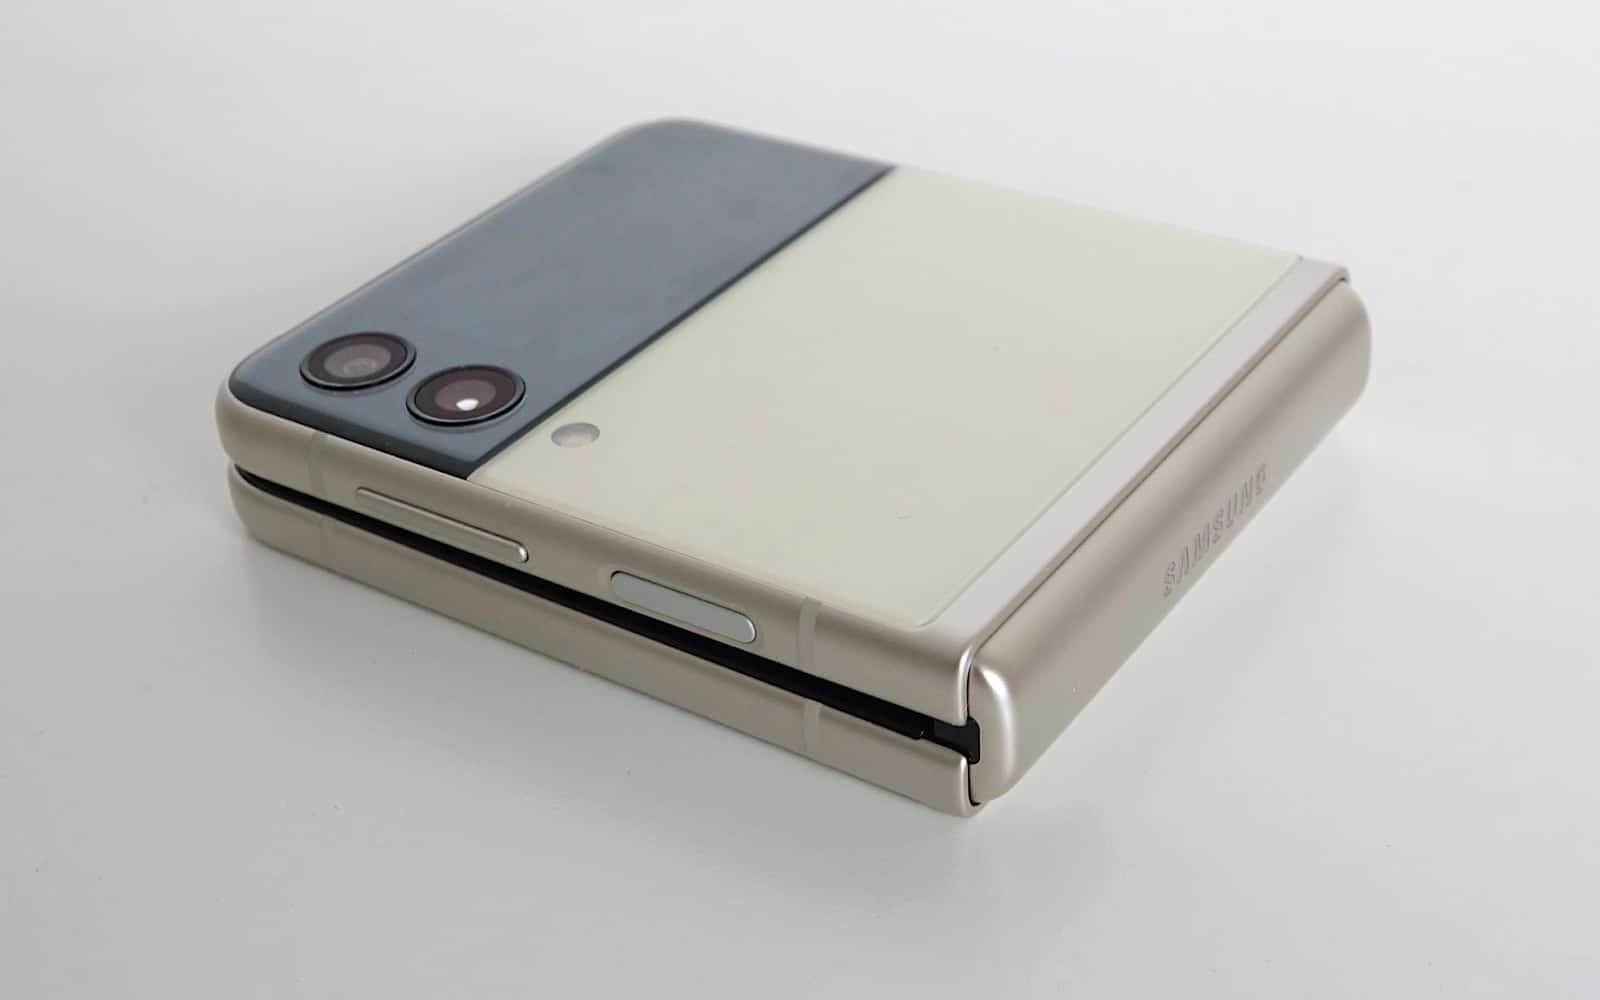 This is a compact little phone.